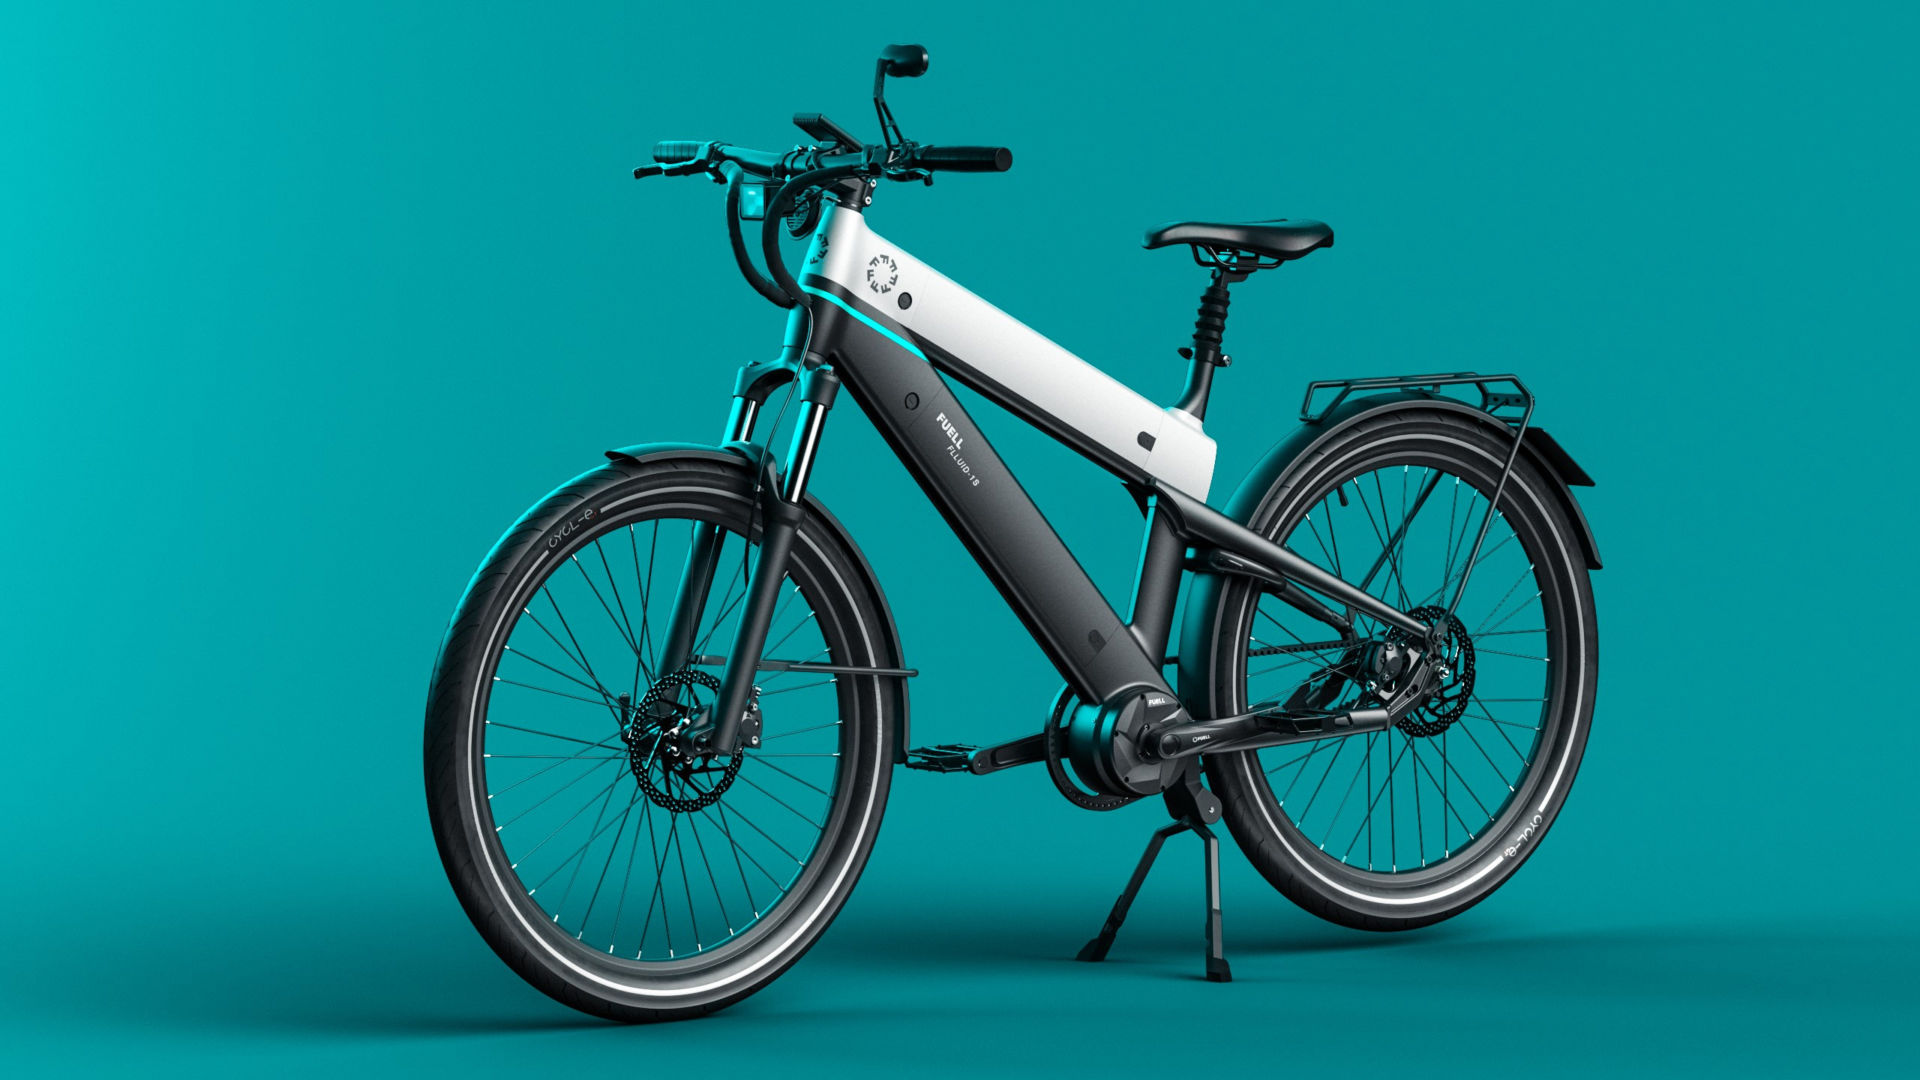 A FUELL Flluid 1-S electric bicycle, a.k.a. E-bike. Photo courtesy FUELL.